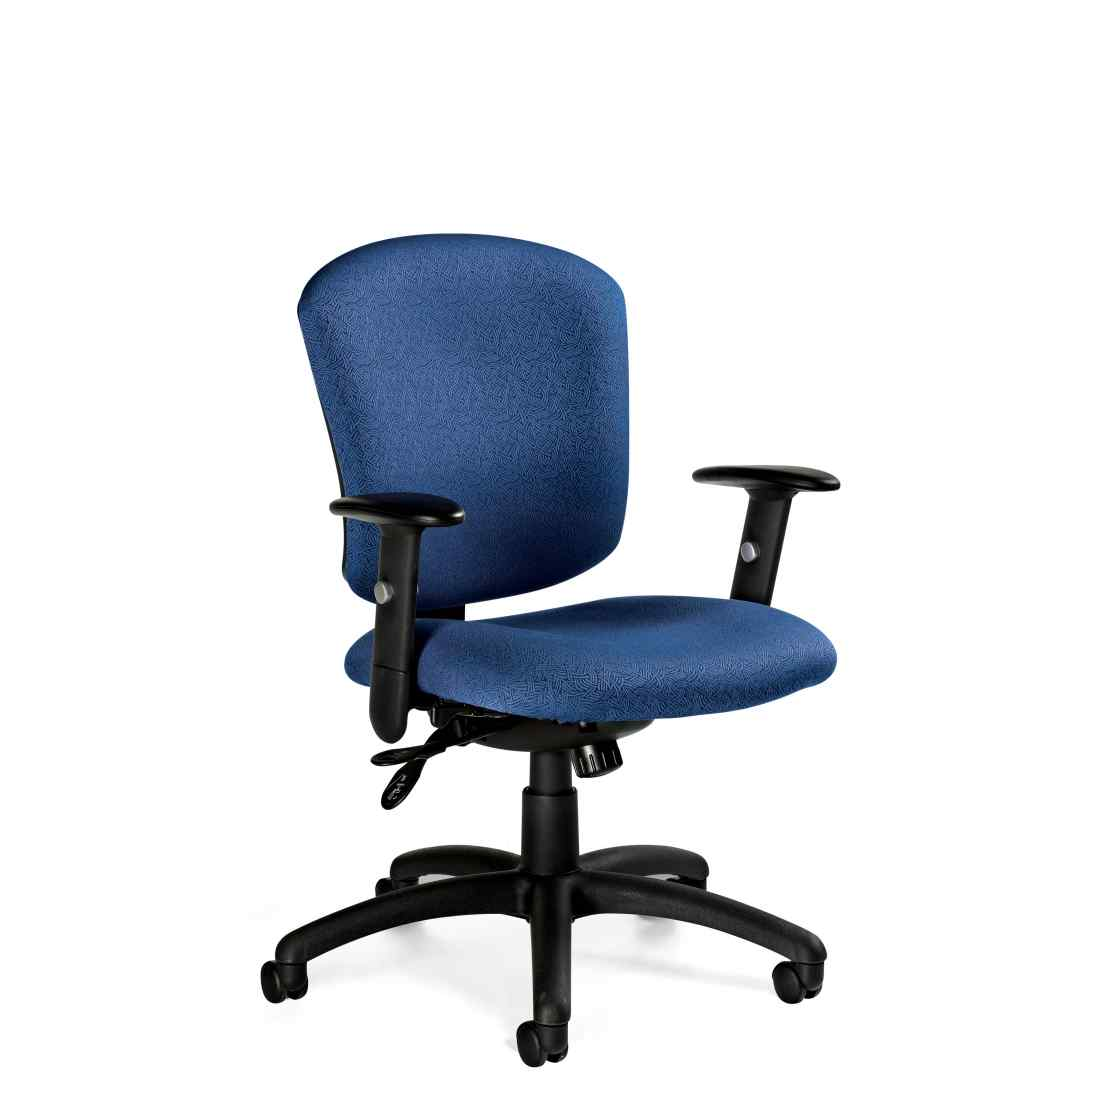 folding chair rental vancouver purple patio chairs buy rite business furnishings office furniture